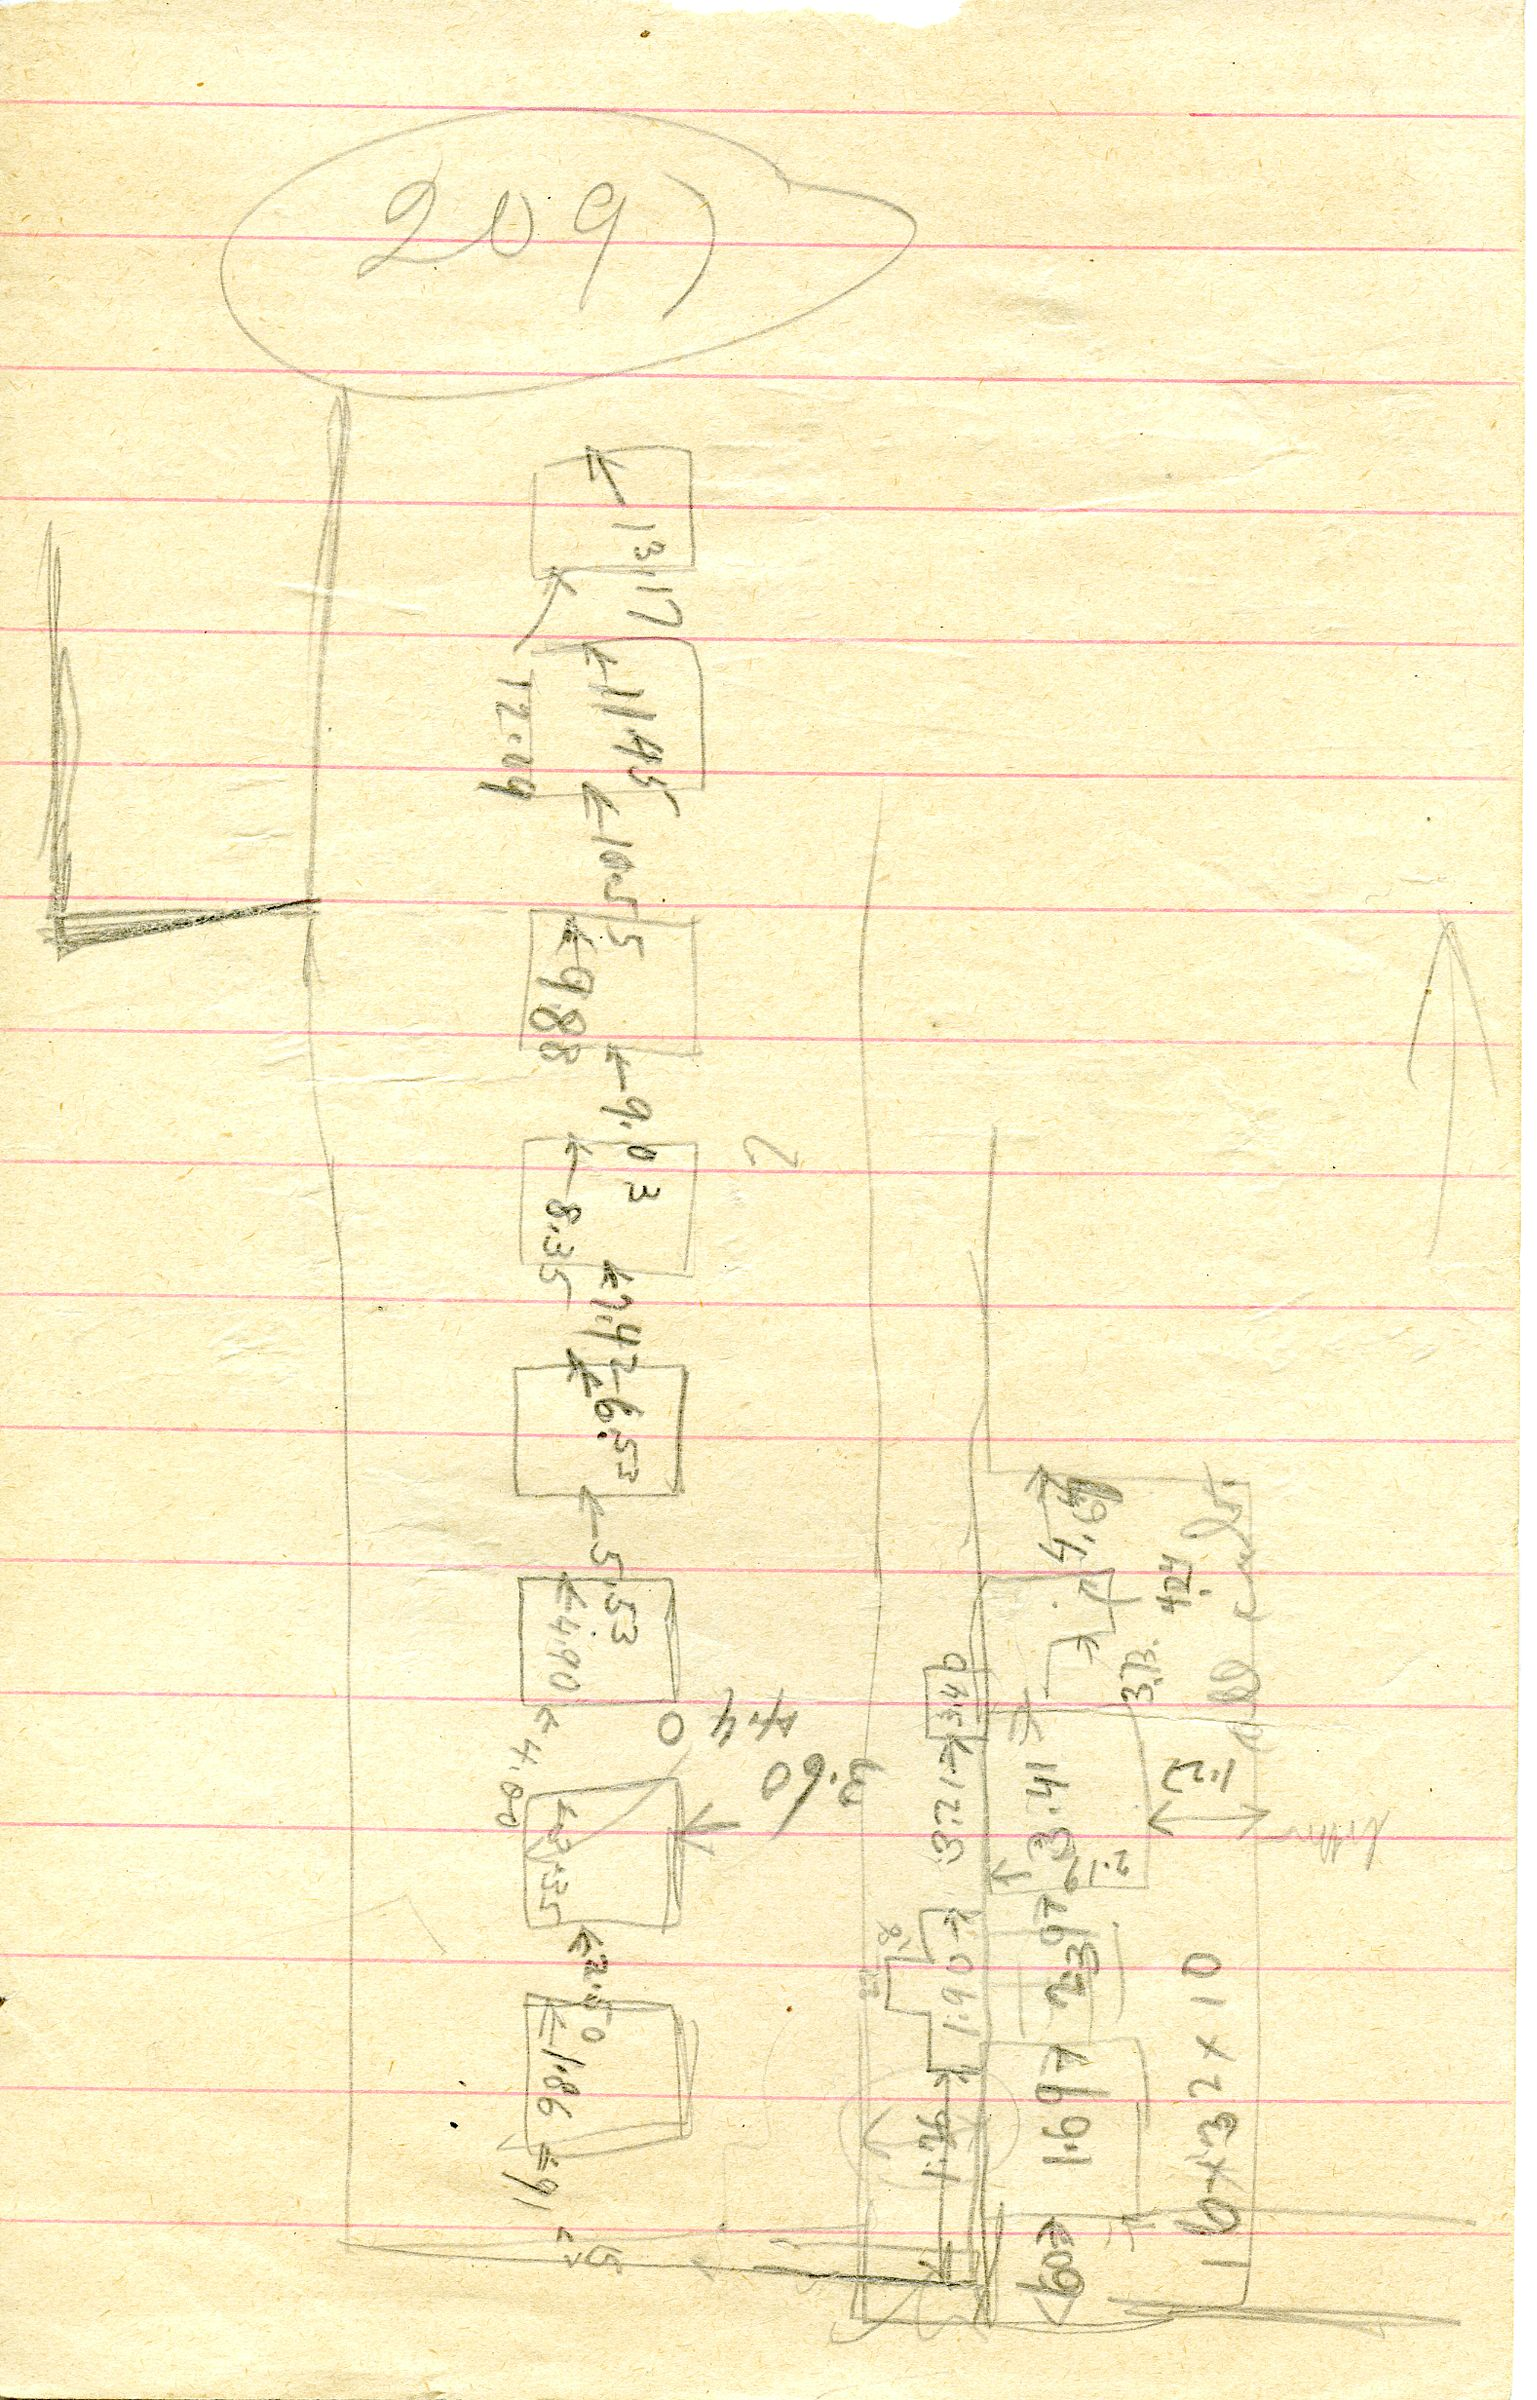 Maps and plans: G 3097, Sketch plan